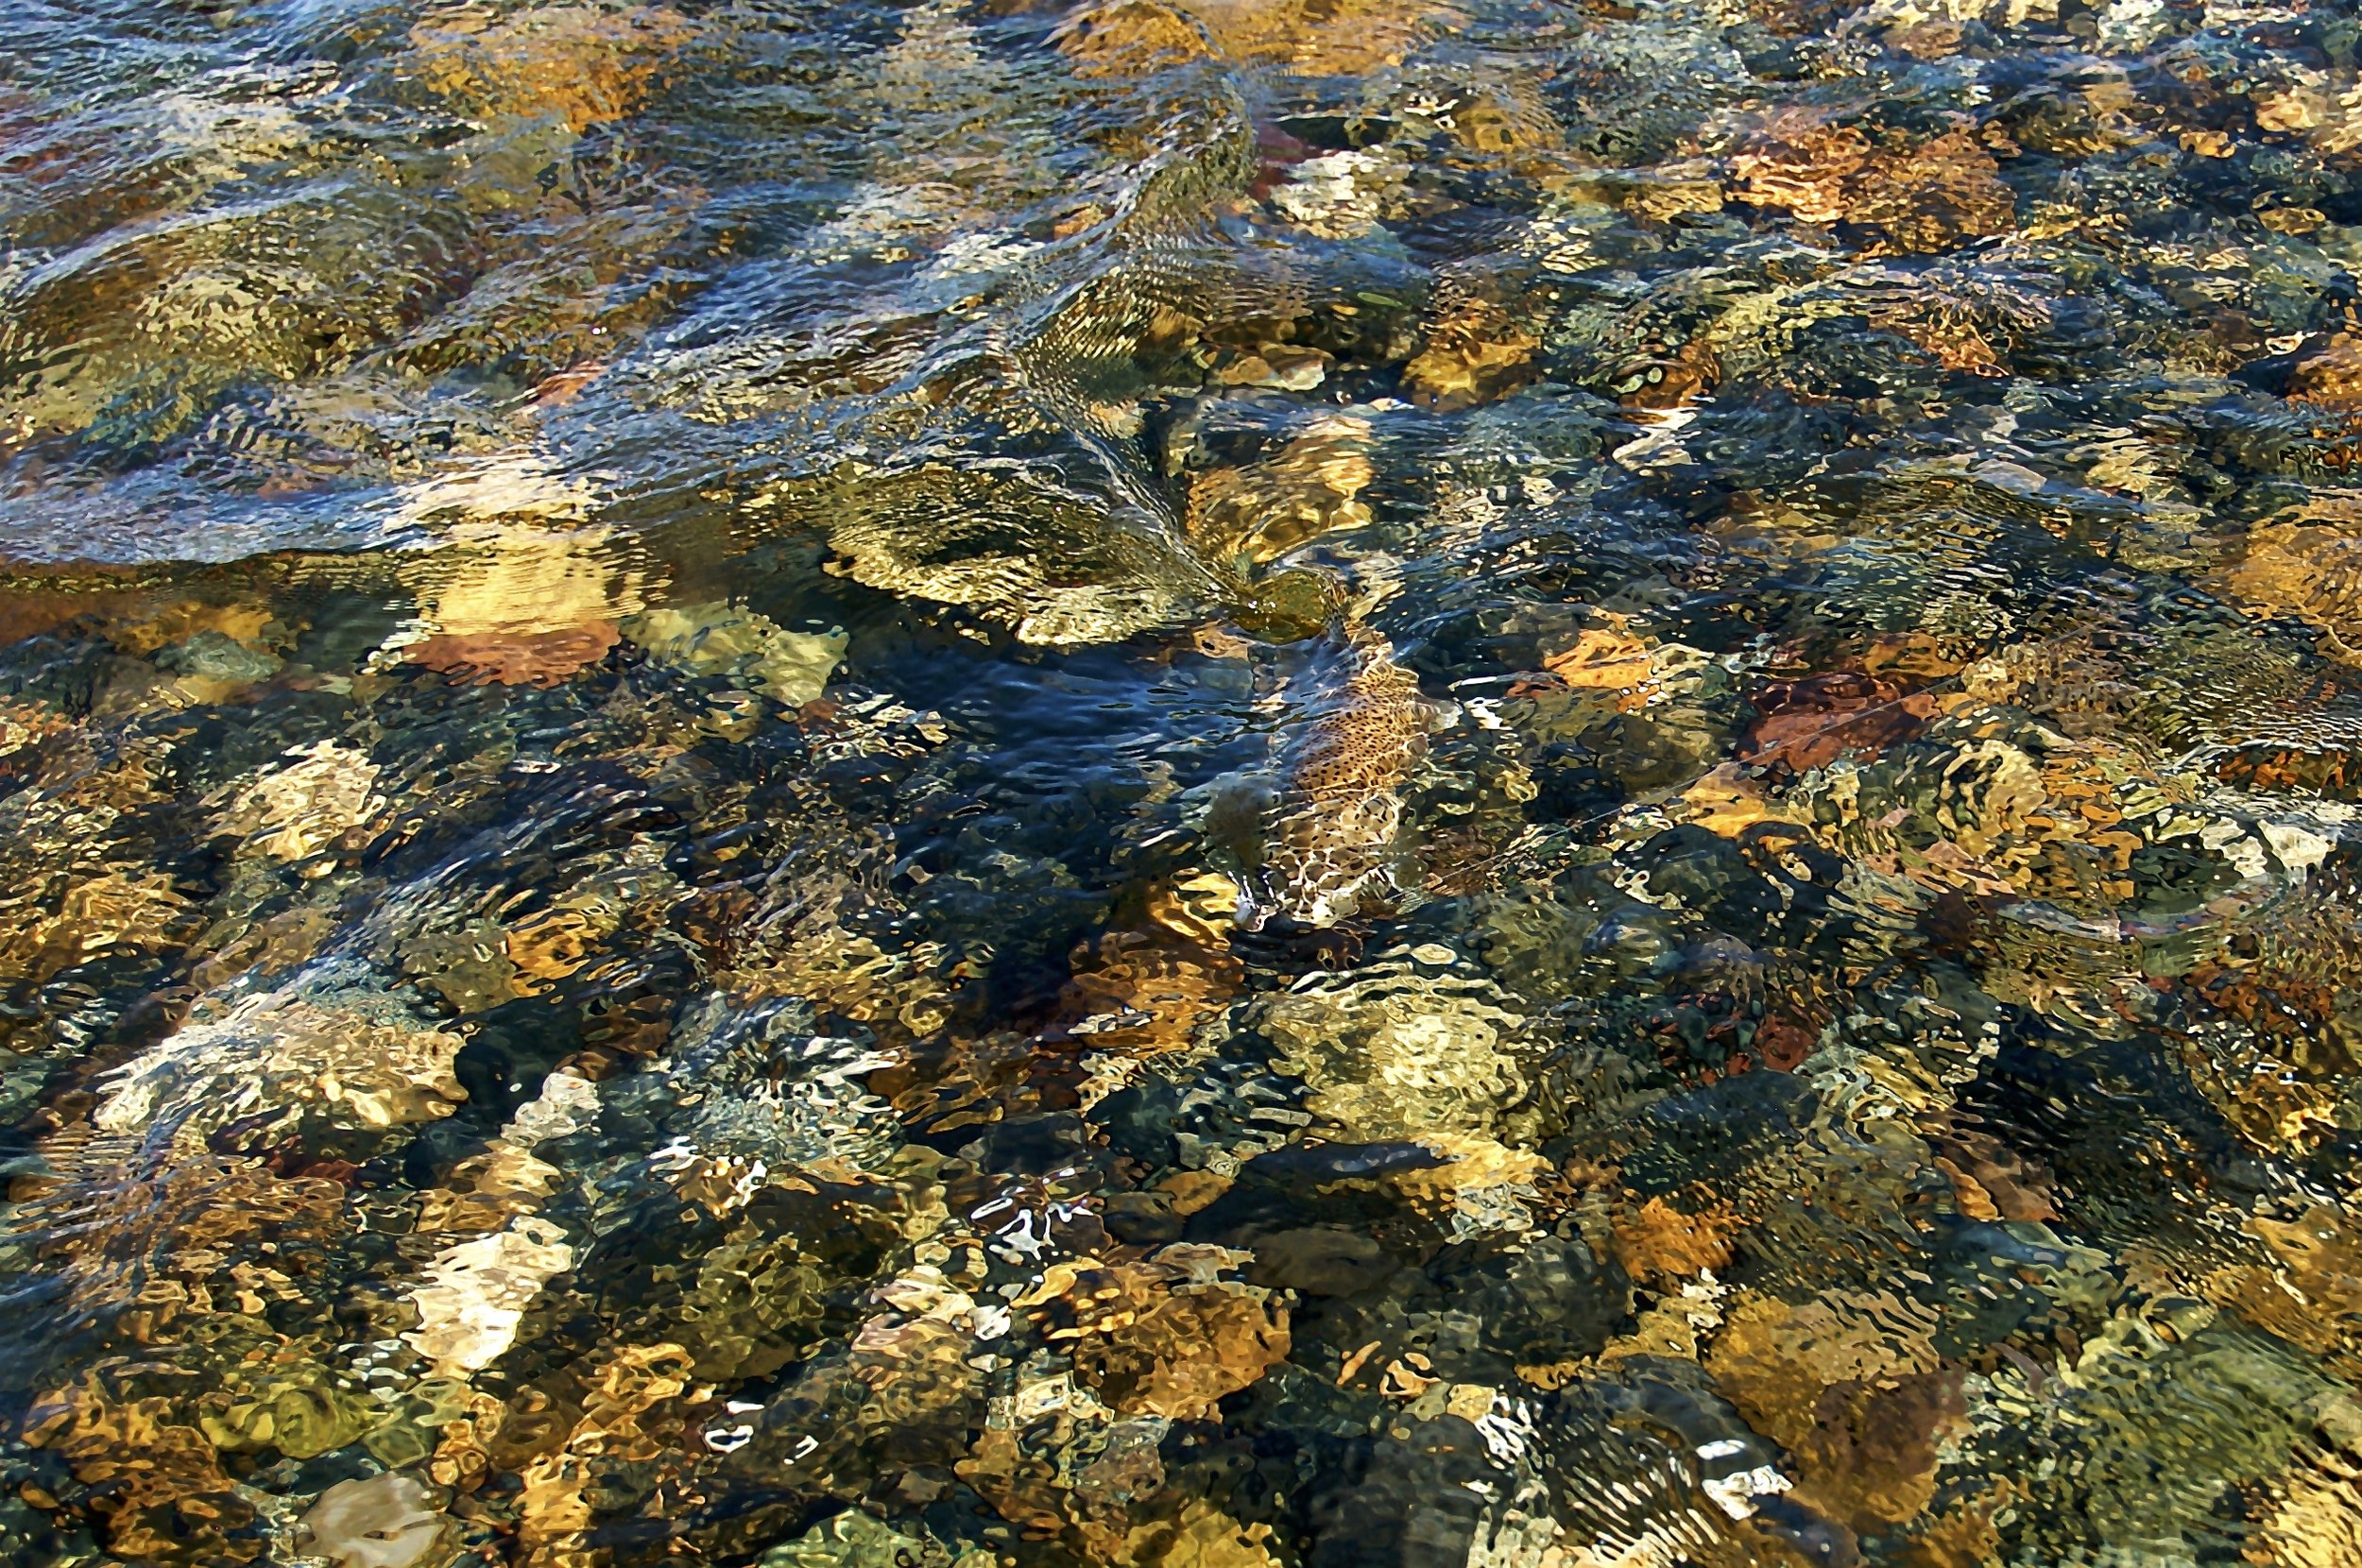 """""""Finding Waldo"""", a camouflaged wild rainbow trout on the rocky bottom of the Limay River, Patagonia, ARG."""